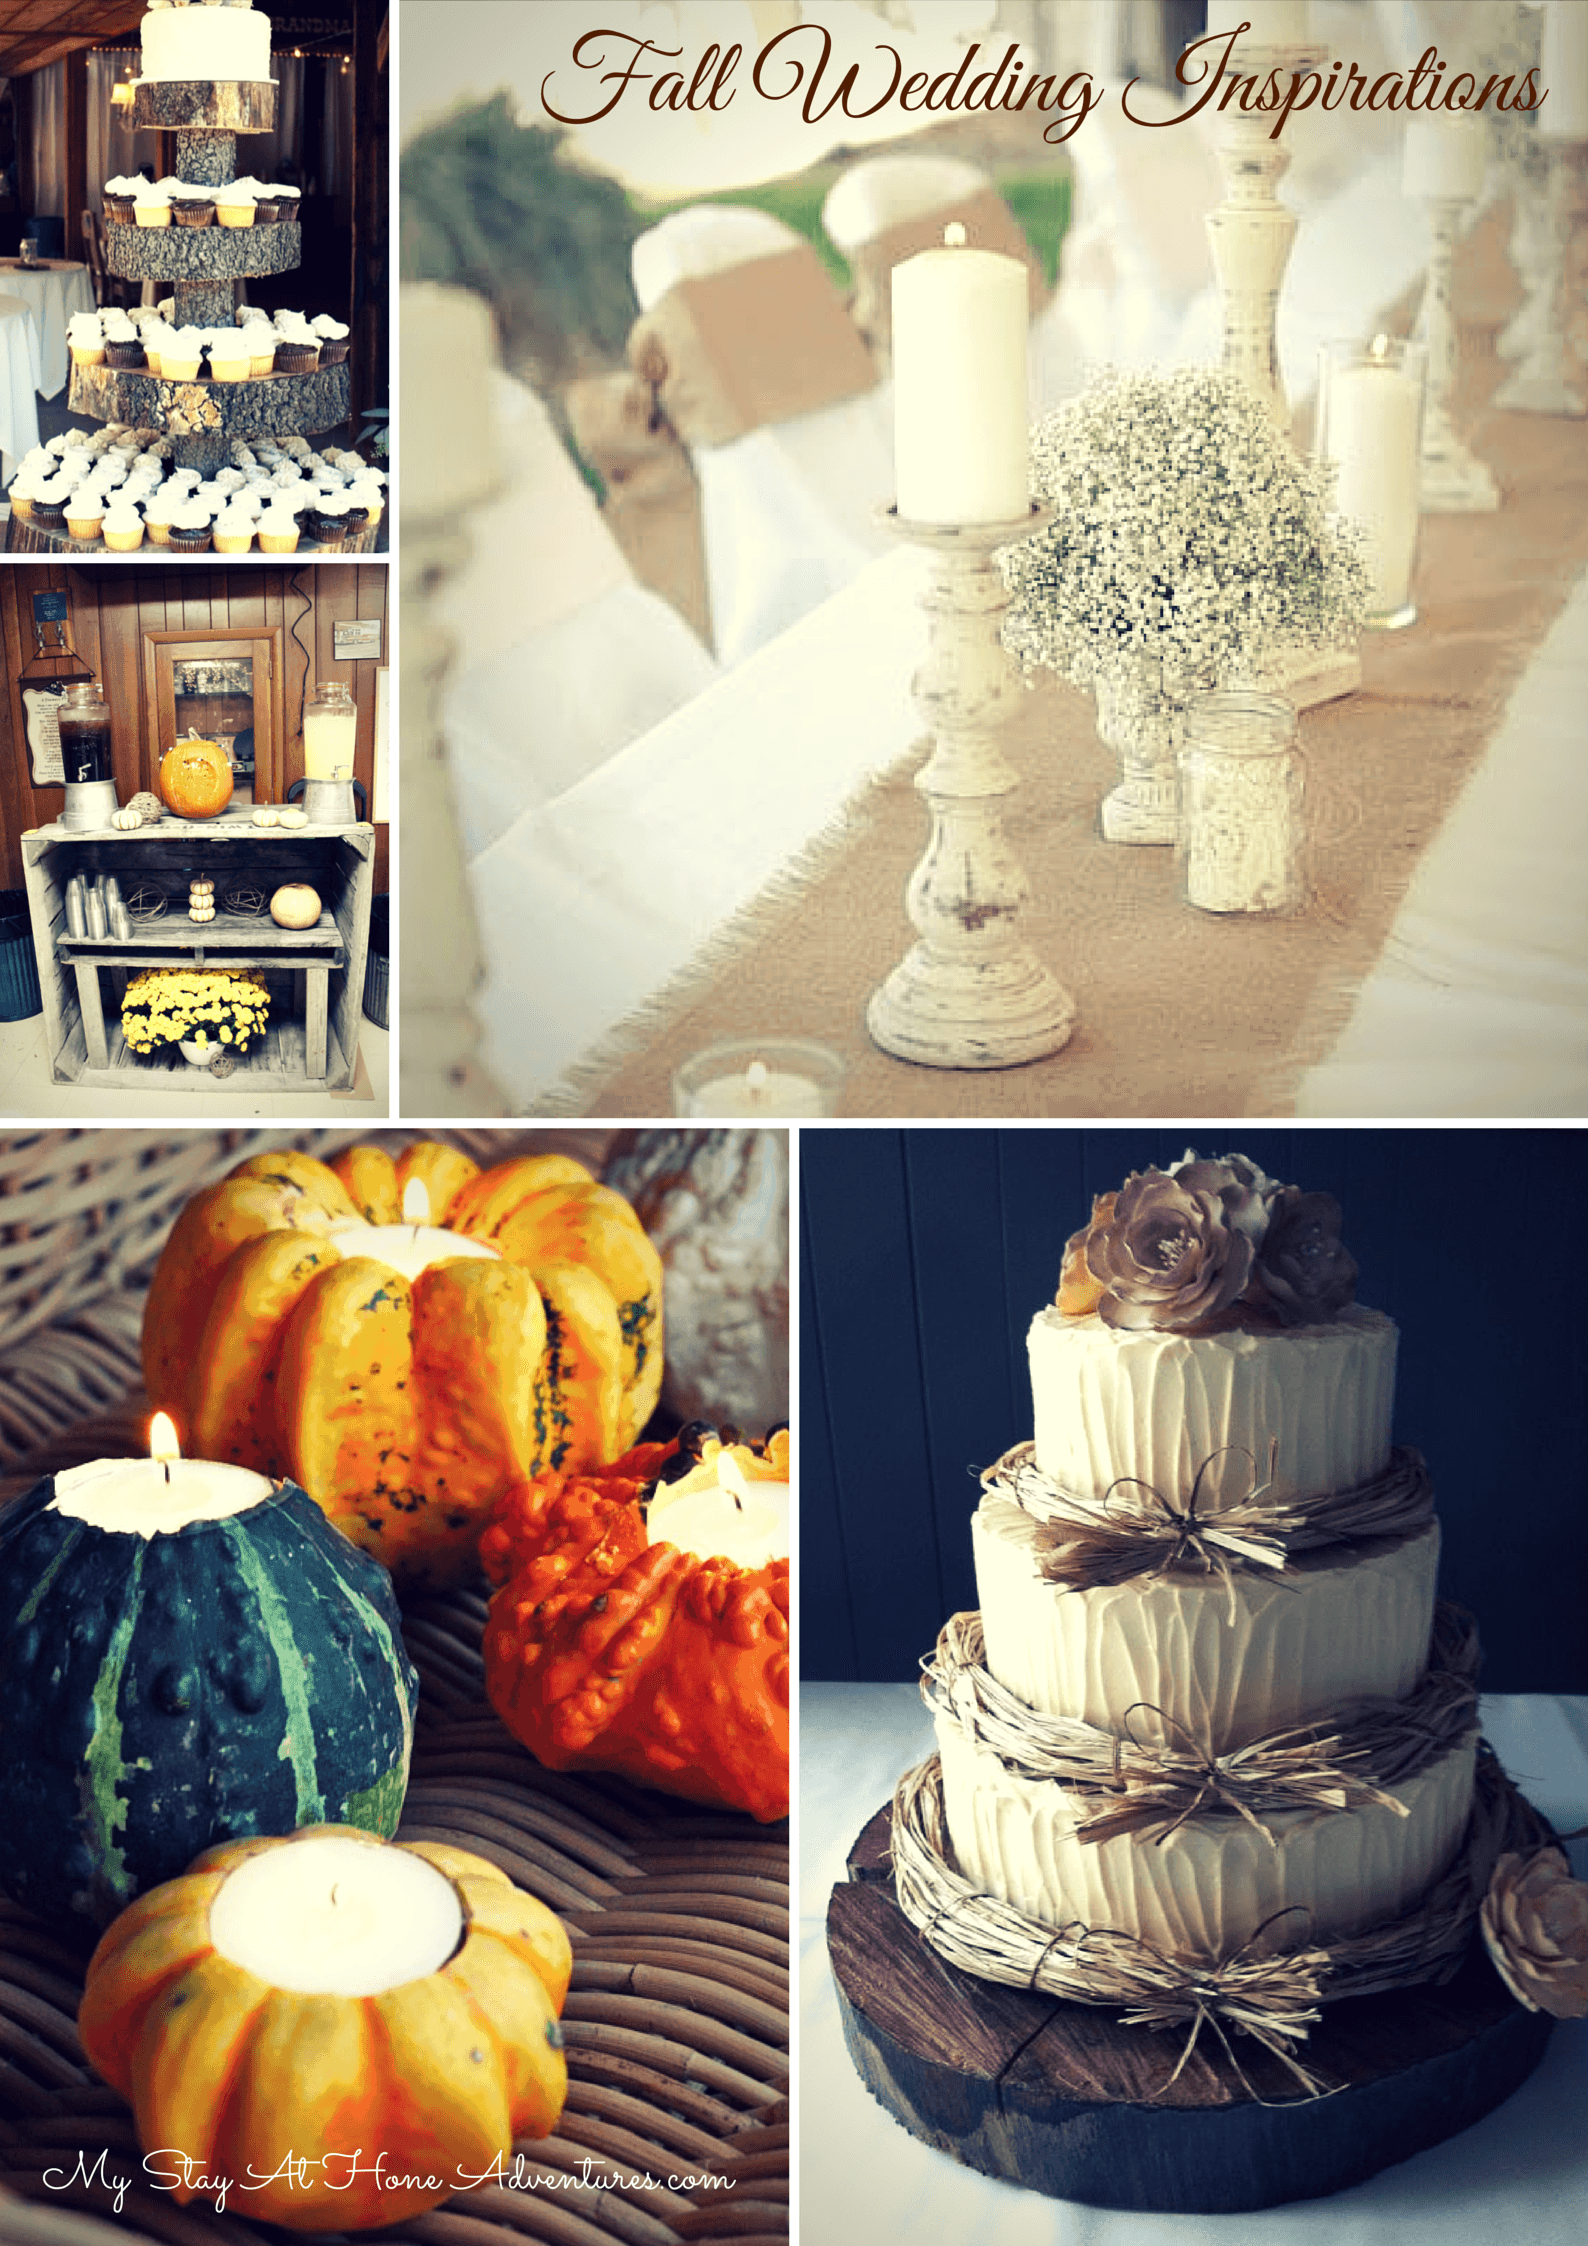 Fall Wedding Inspirations - Looking for the latest Fall Wedding Inspirations? Check out these hot, trendy fall wedding decorations and to save money creating them.